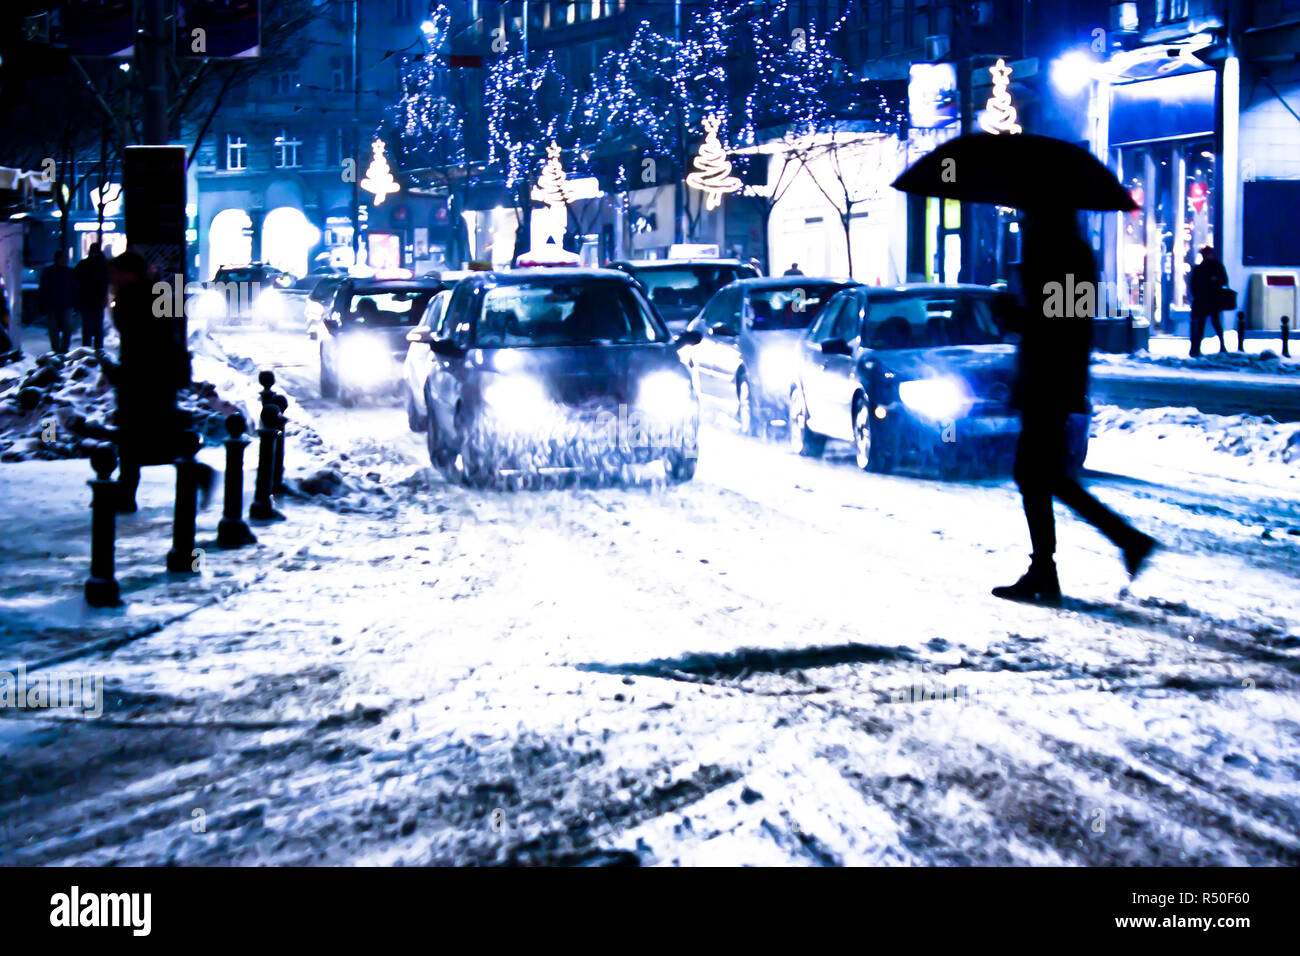 Blurry snowy city night traffic with pedestrian silhouete crossing the street - Stock Image